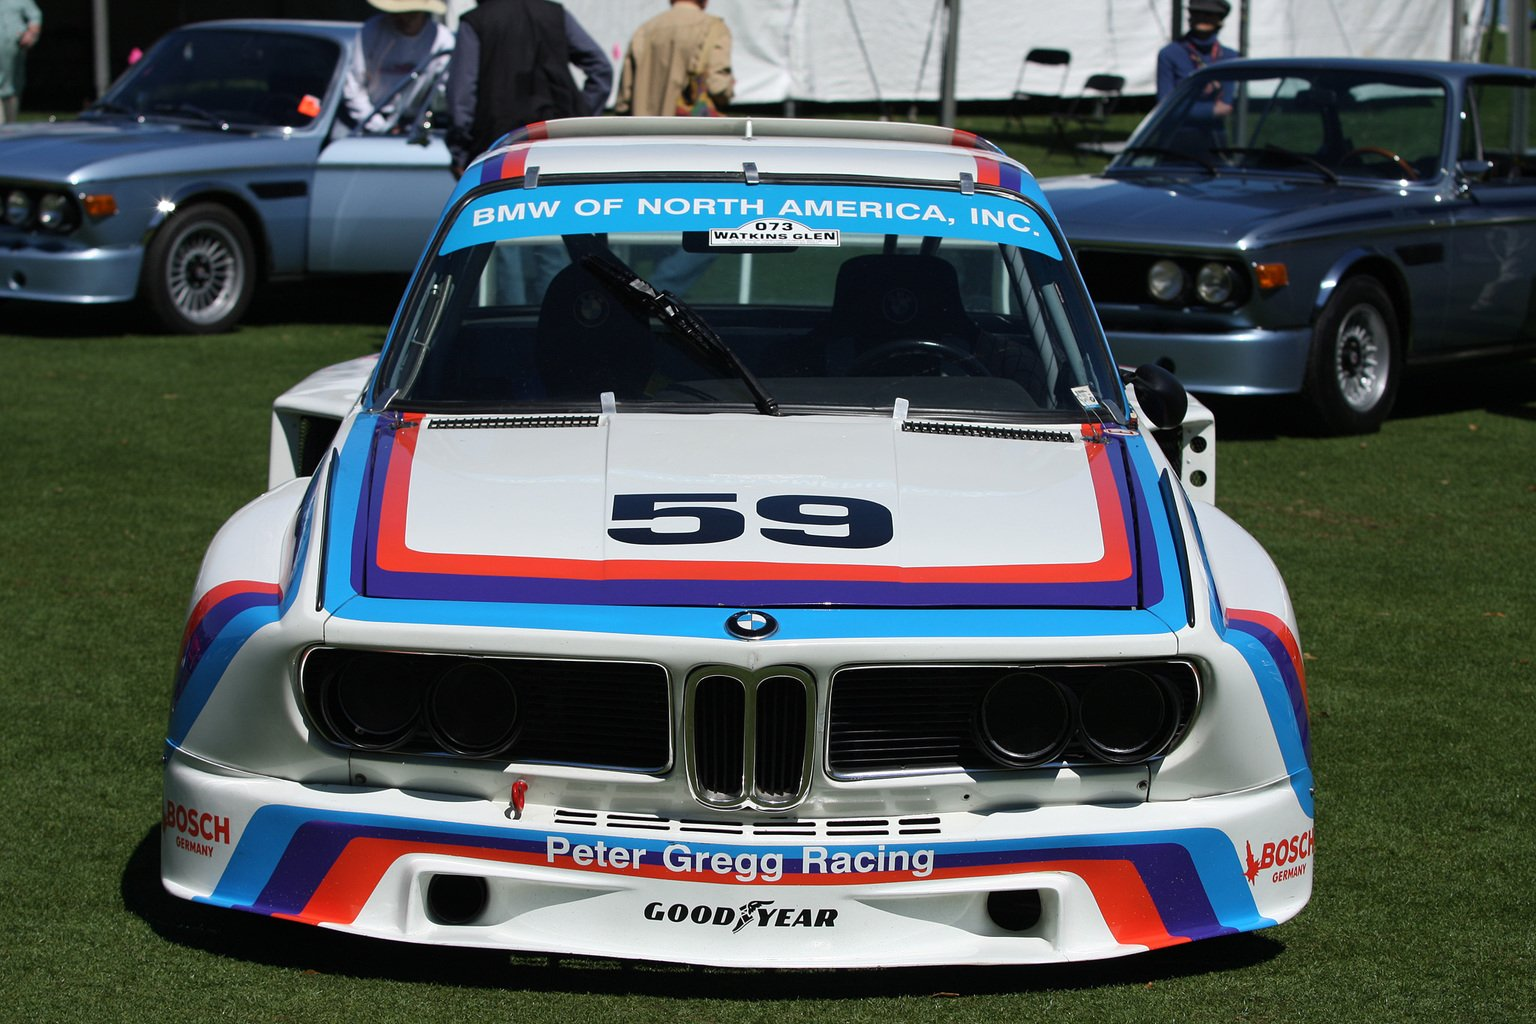 Small Size Car Wallpapers Imsa 1975 Bmw 3 5 Csl Group 4 Germany Race Racing Car